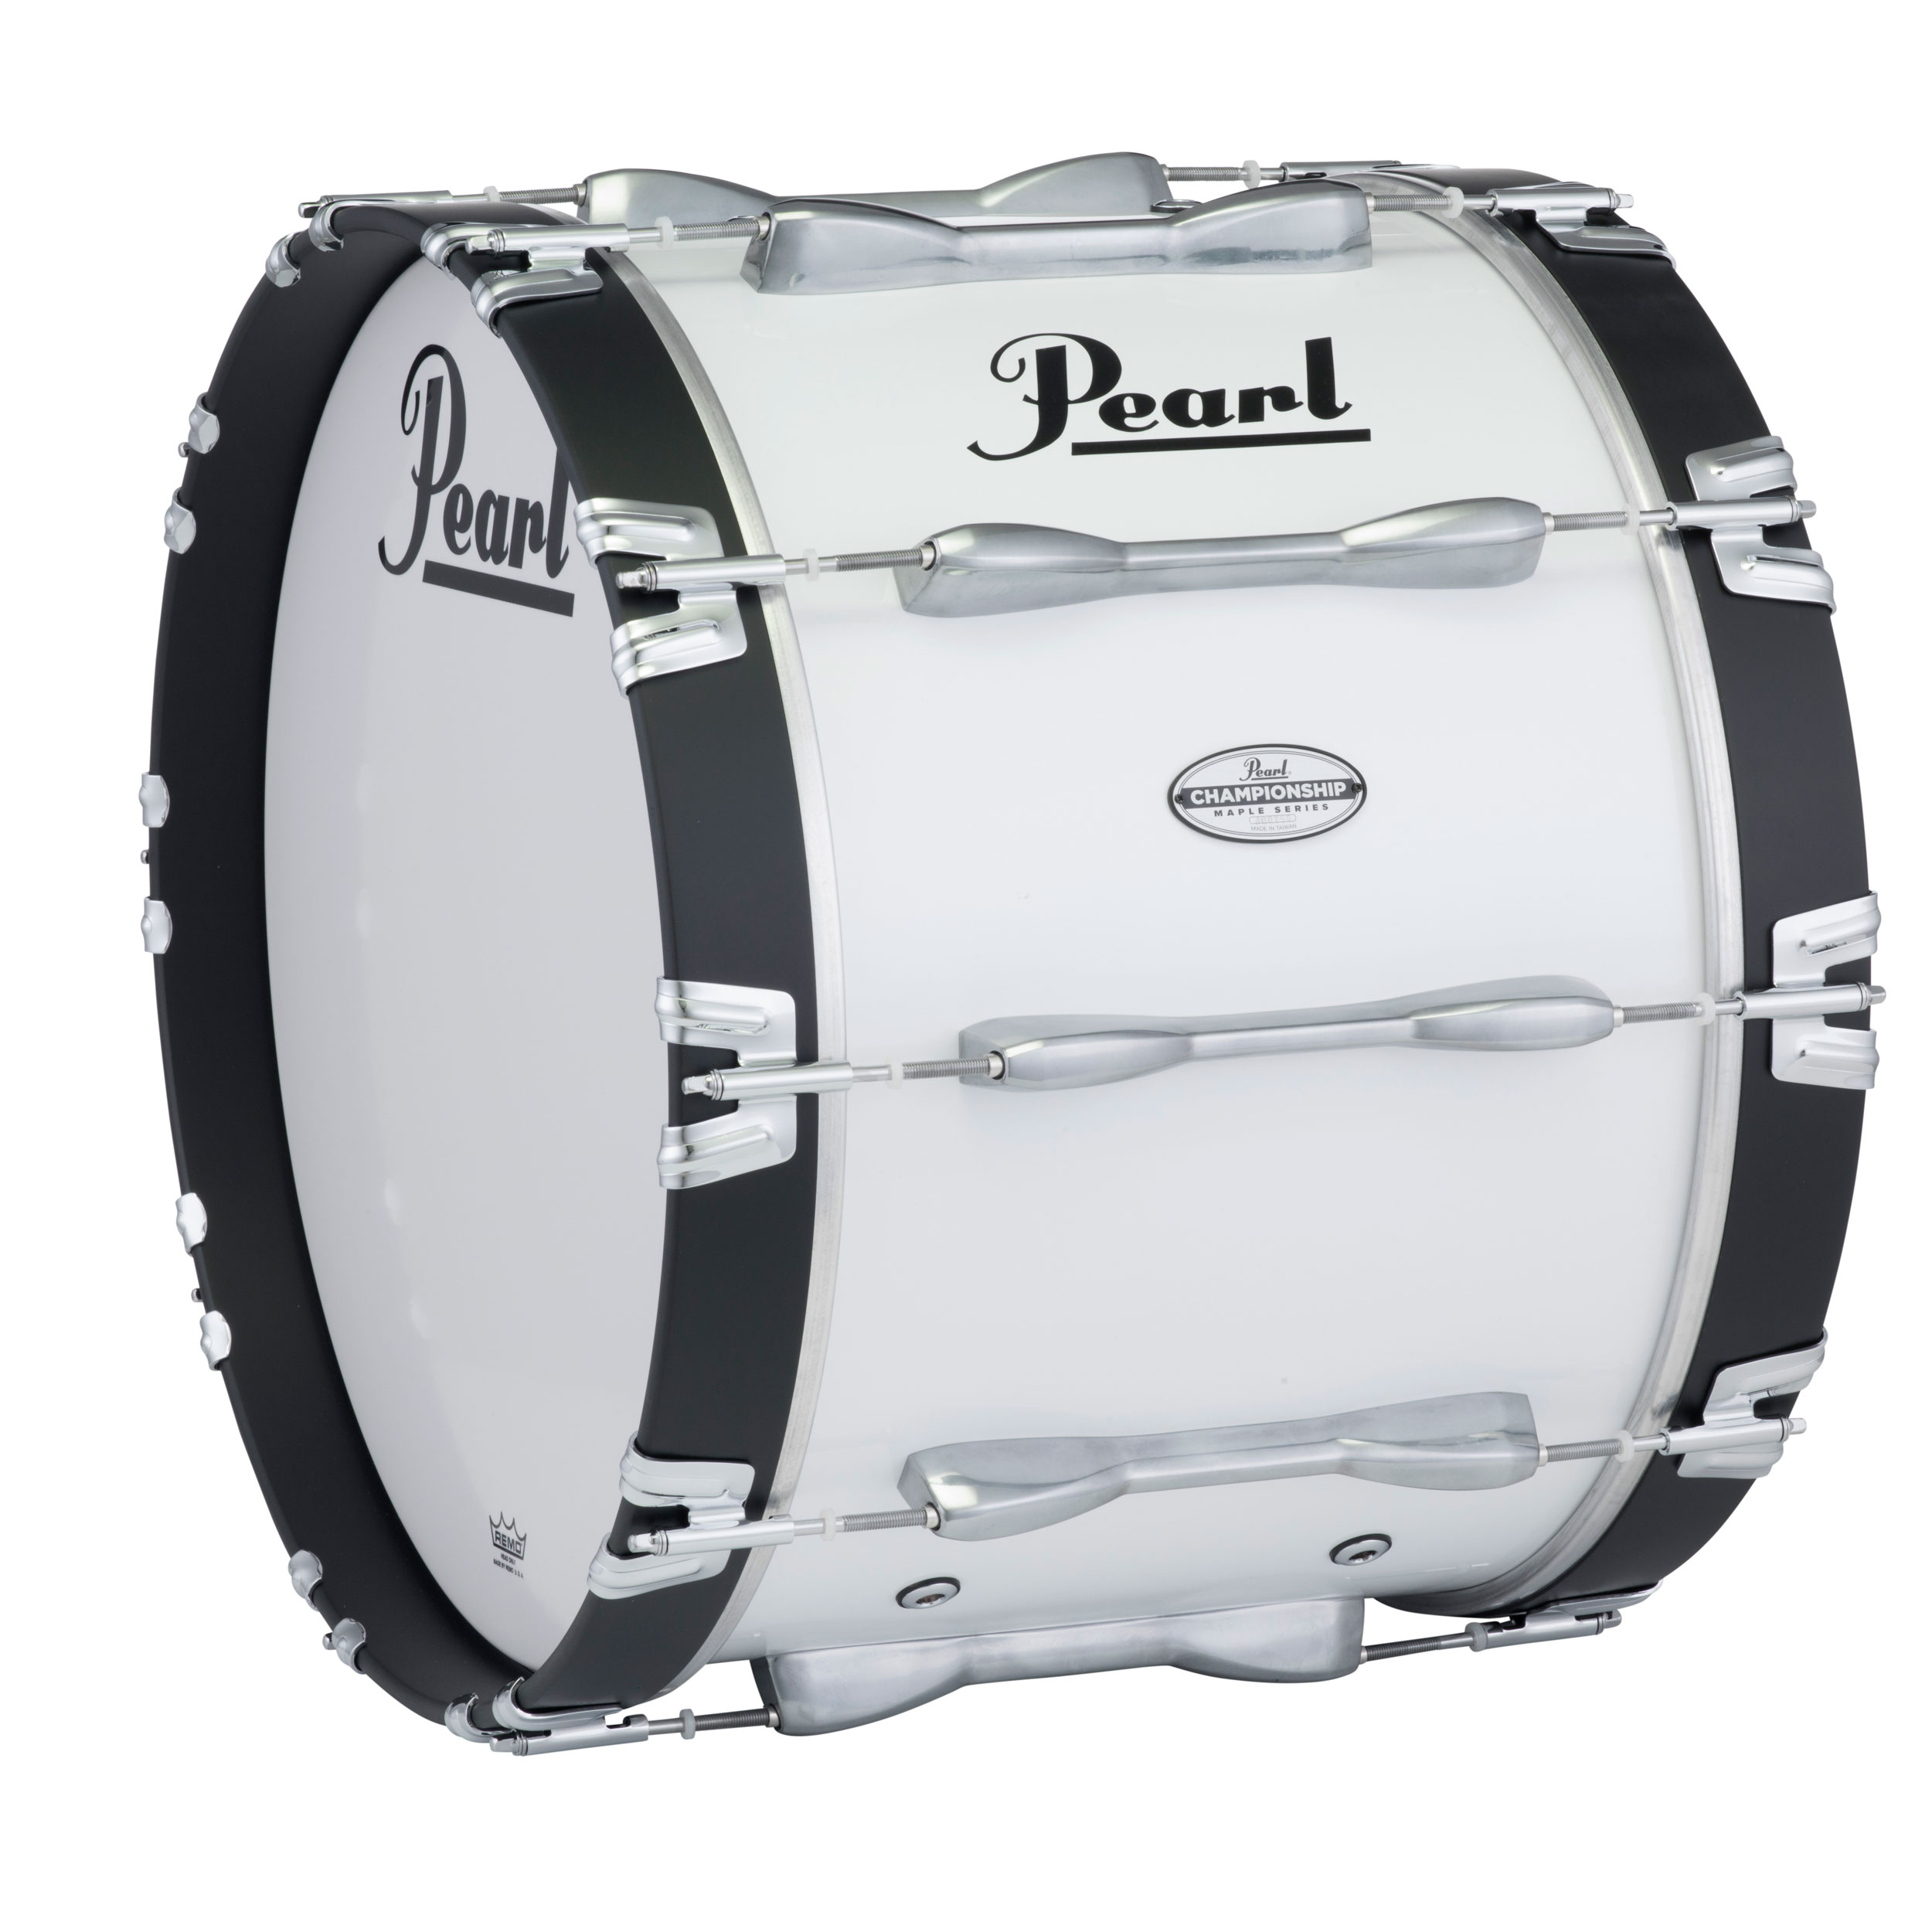 "Pearl 16"" PBDM Championship Maple Marching Bass Drum in Wrap Finish"